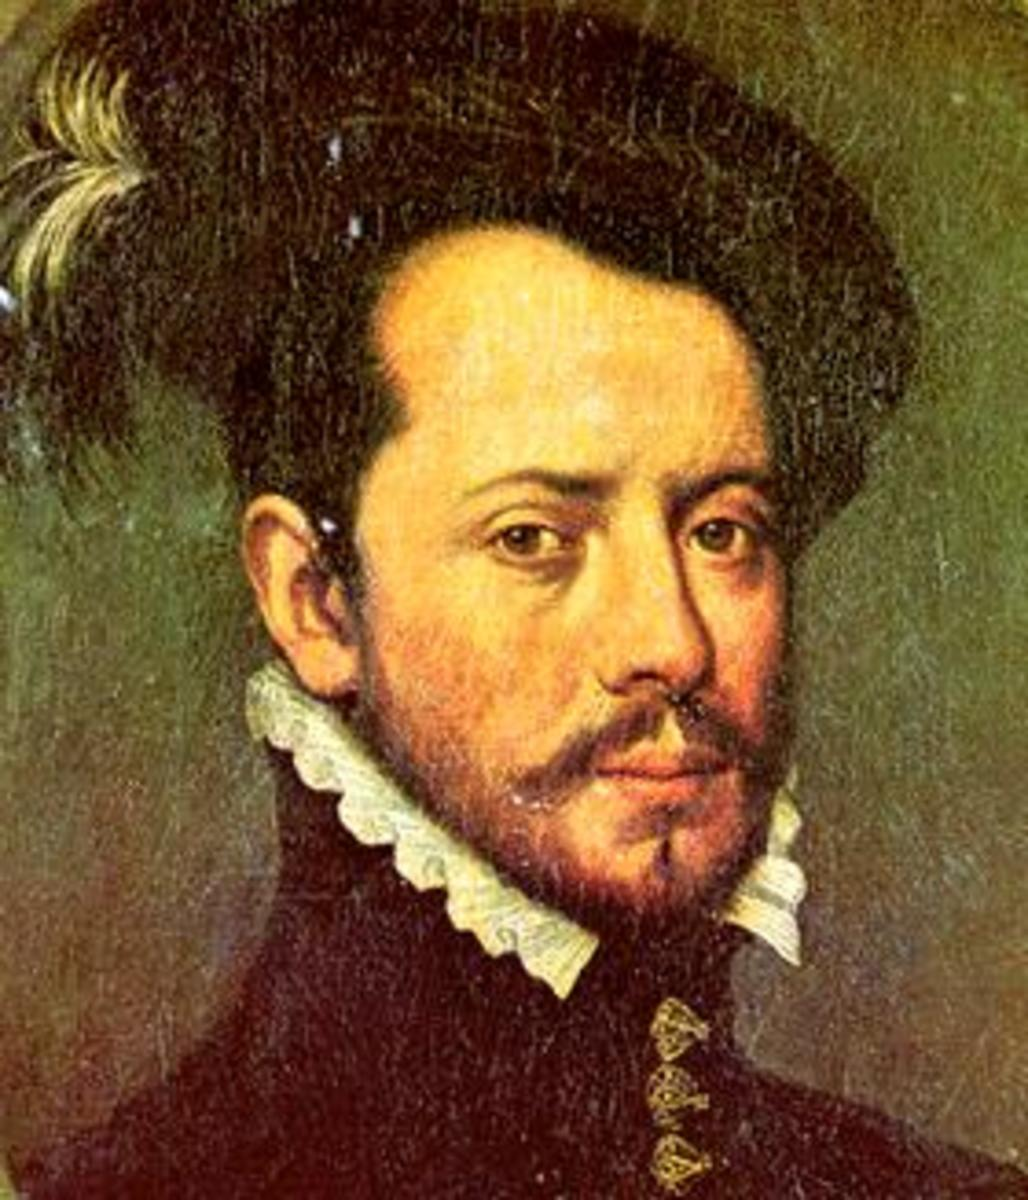 Hernan Cortes' skill and cunning helped the Spanish to defeat an army that vastly outnumbered them.